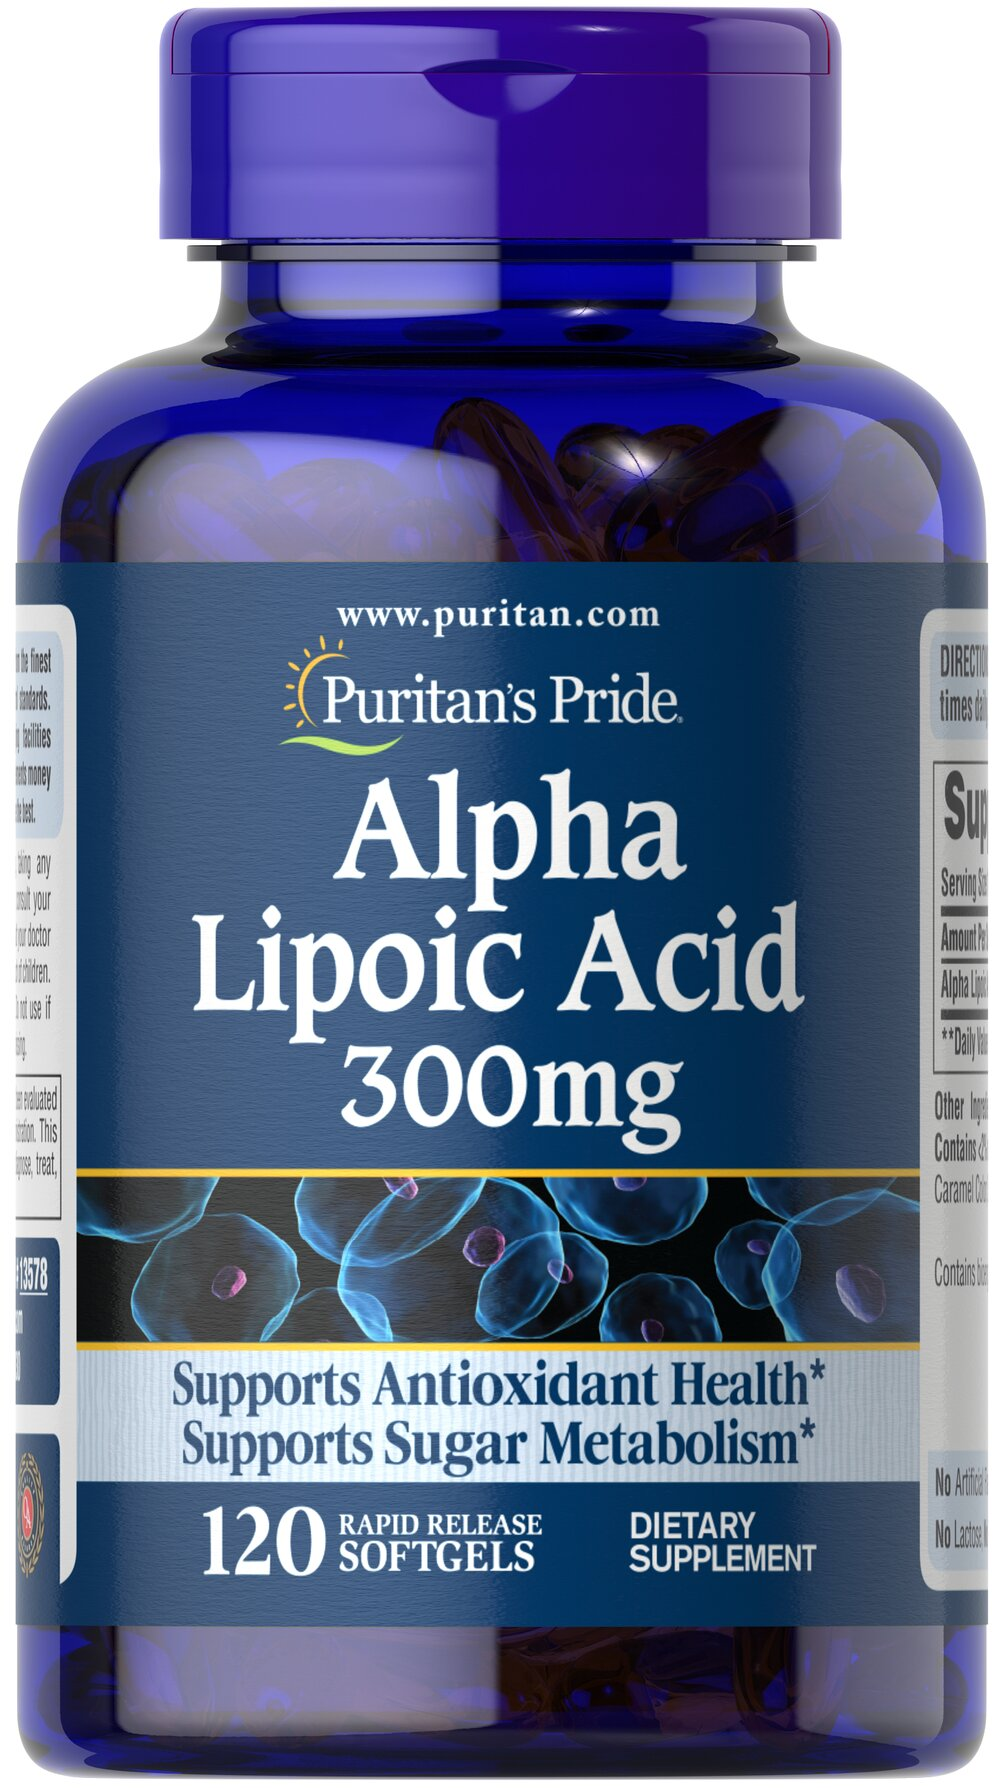 "Alpha Lipoic Acid 300 mg <p>Alpha Lipoic Acid (ALA) helps metabolize sugar, especially in muscles, where it promotes energy.**</p><p>ALA is also beneficial for liver health, and helps to revitalize the underlying structure of the skin so it can look healthier and more radiant.**</p><p> ALA is often called the ""universal antioxidant"" for its ability to help neutralize cell-damaging free radicals.** </p> 120 Softgels 300 mg $24.49"